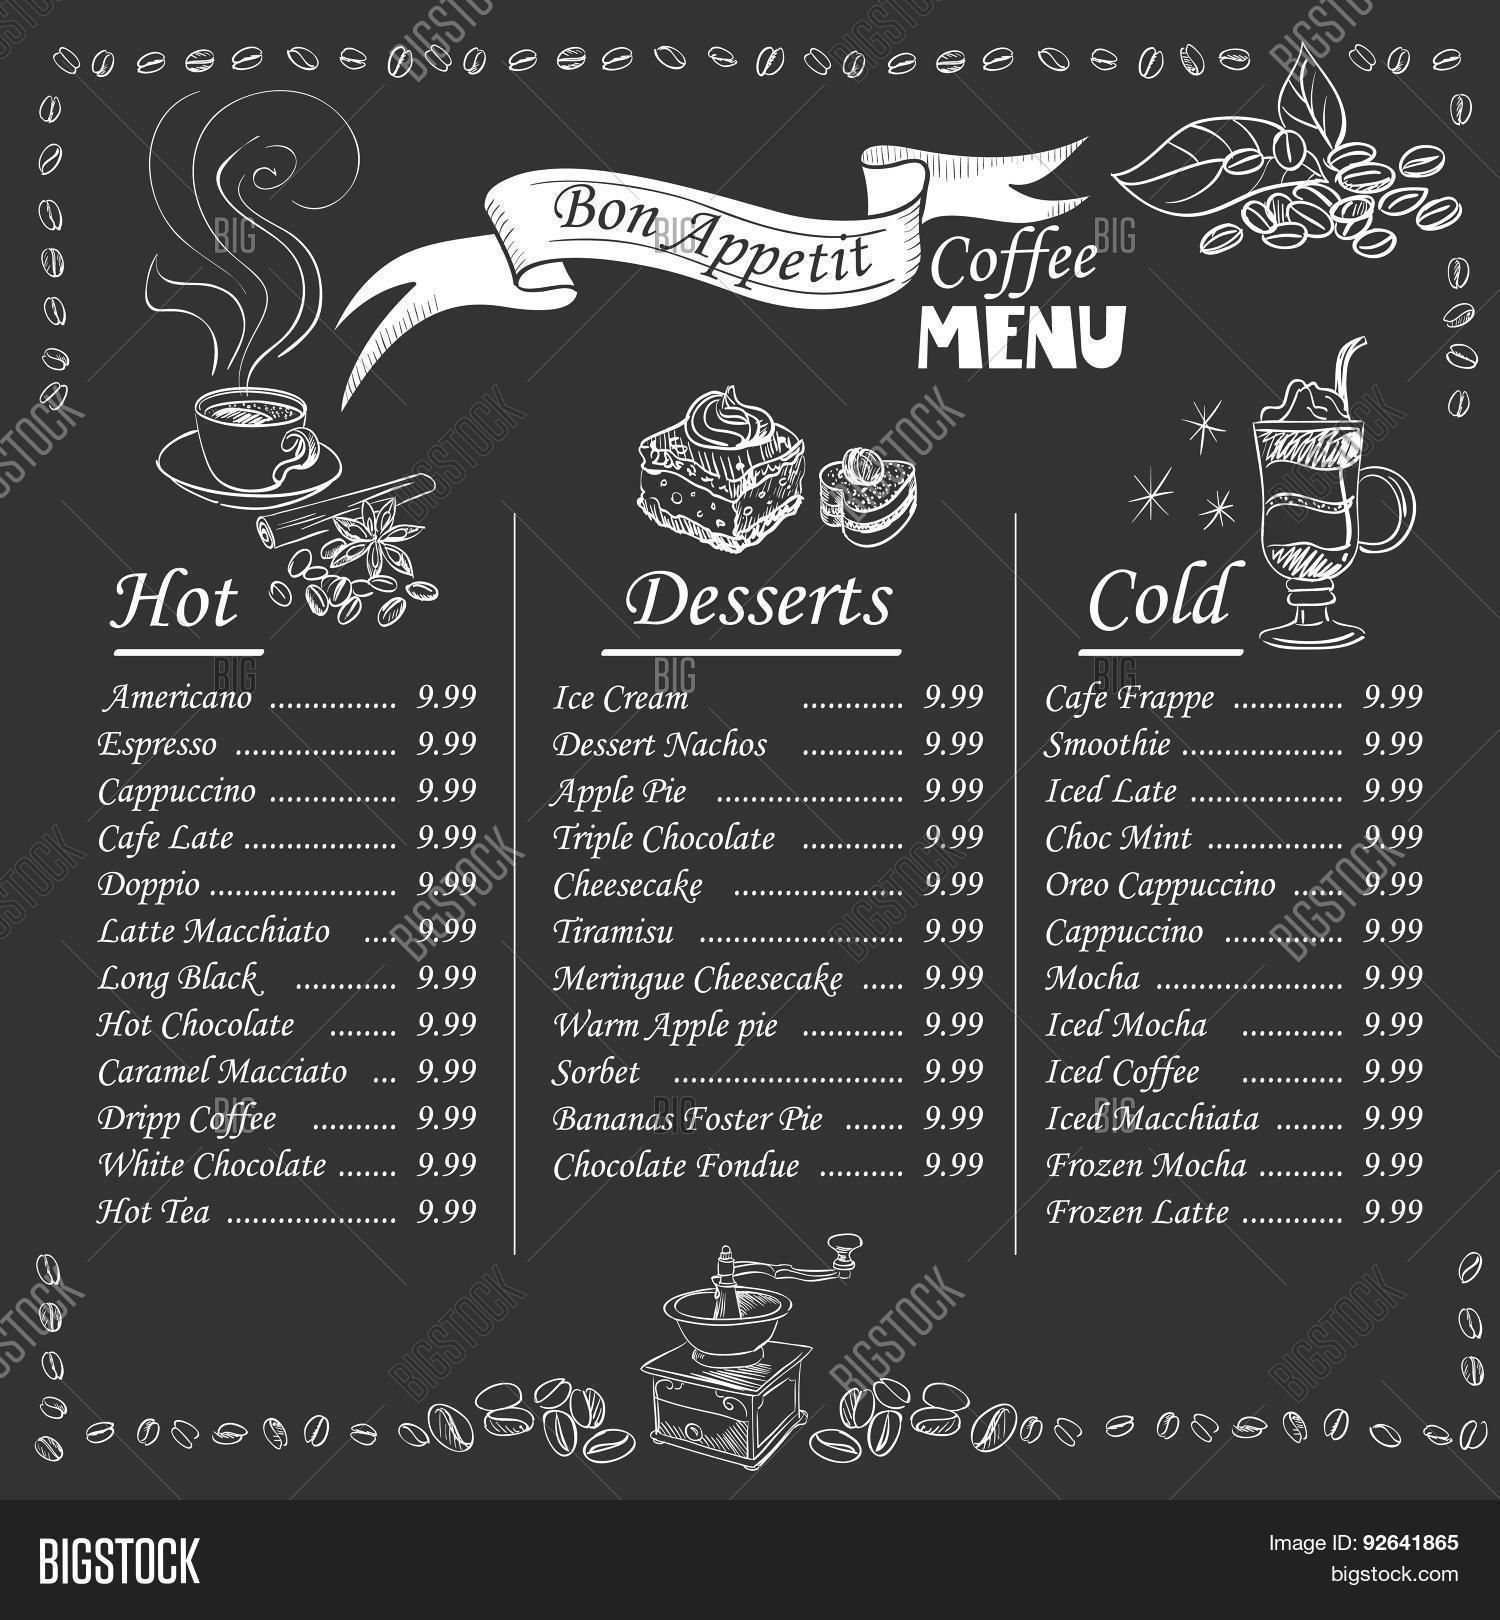 Coffee Menu On Chalkboard   Everything Caffe